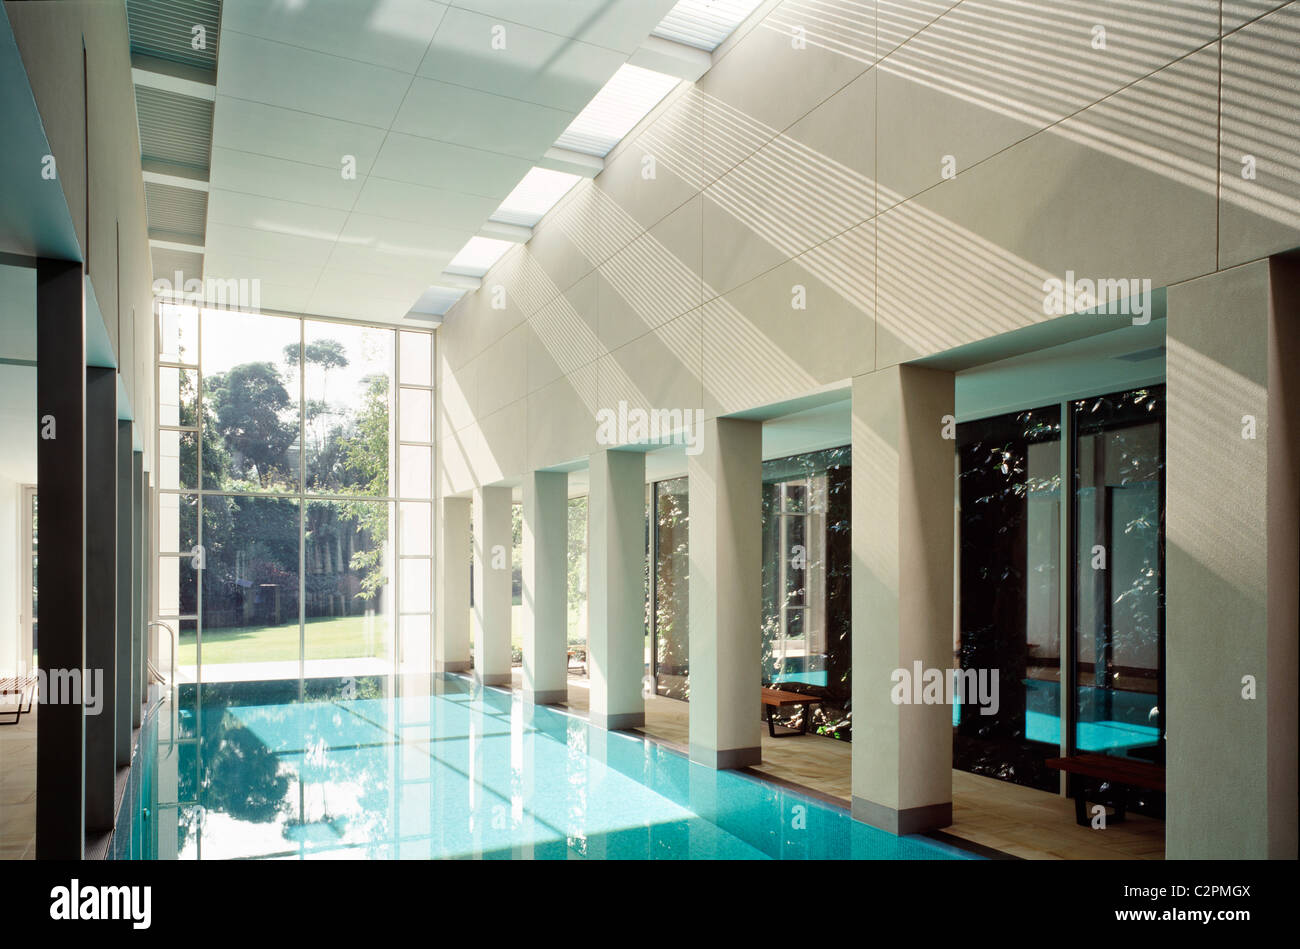 Beeson House - Melbourne, Australia. Stock Photo